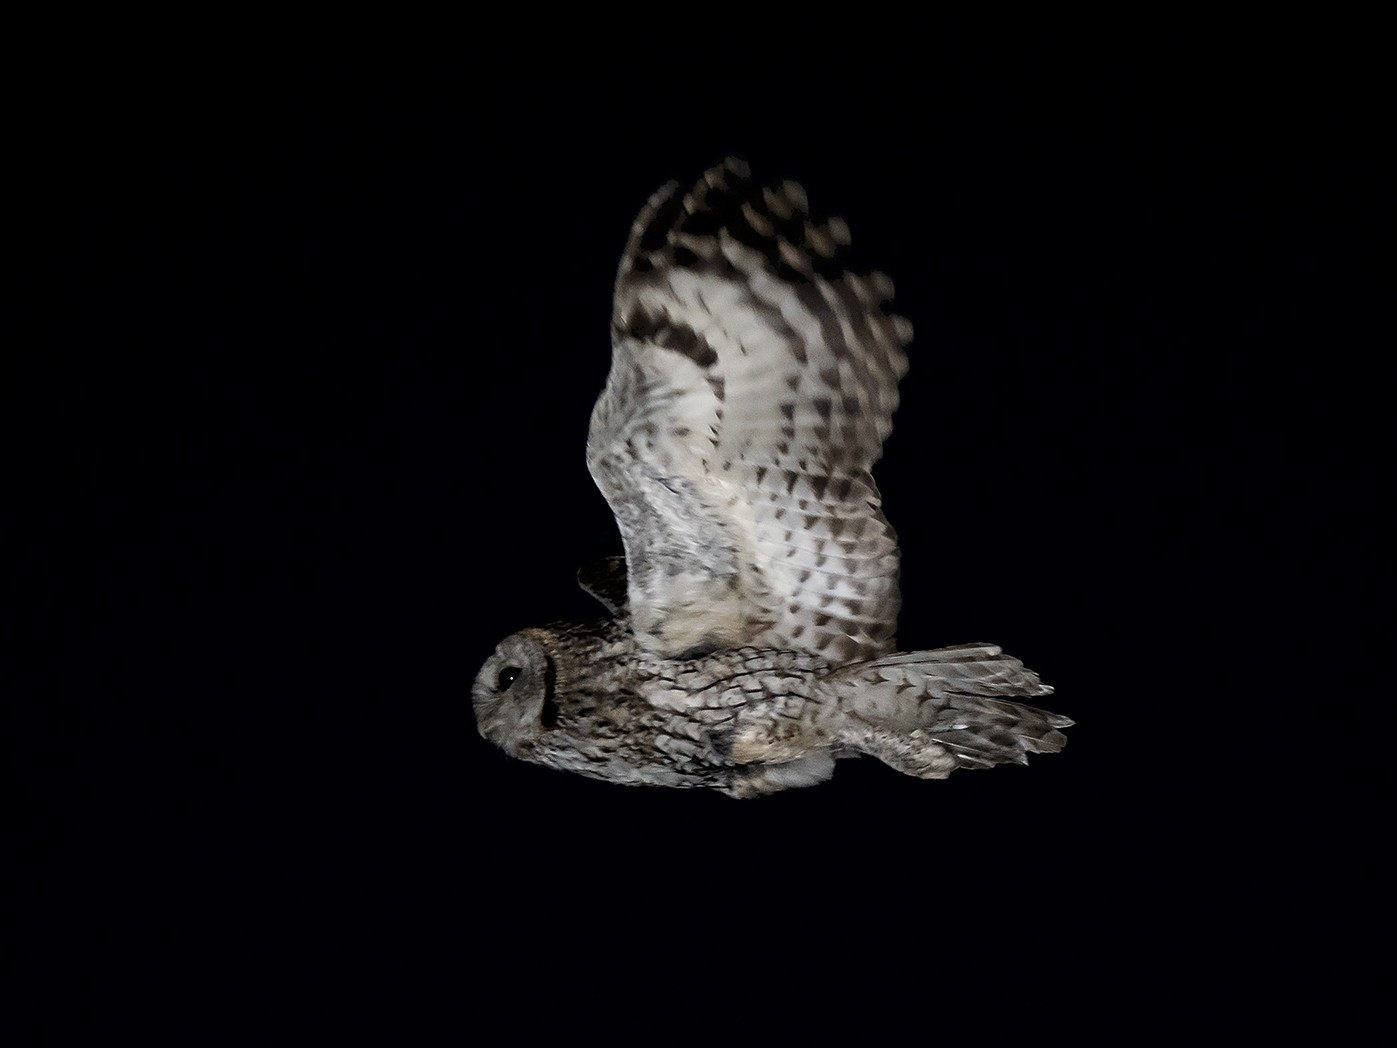 Tawny Owl - Miguel Rouco